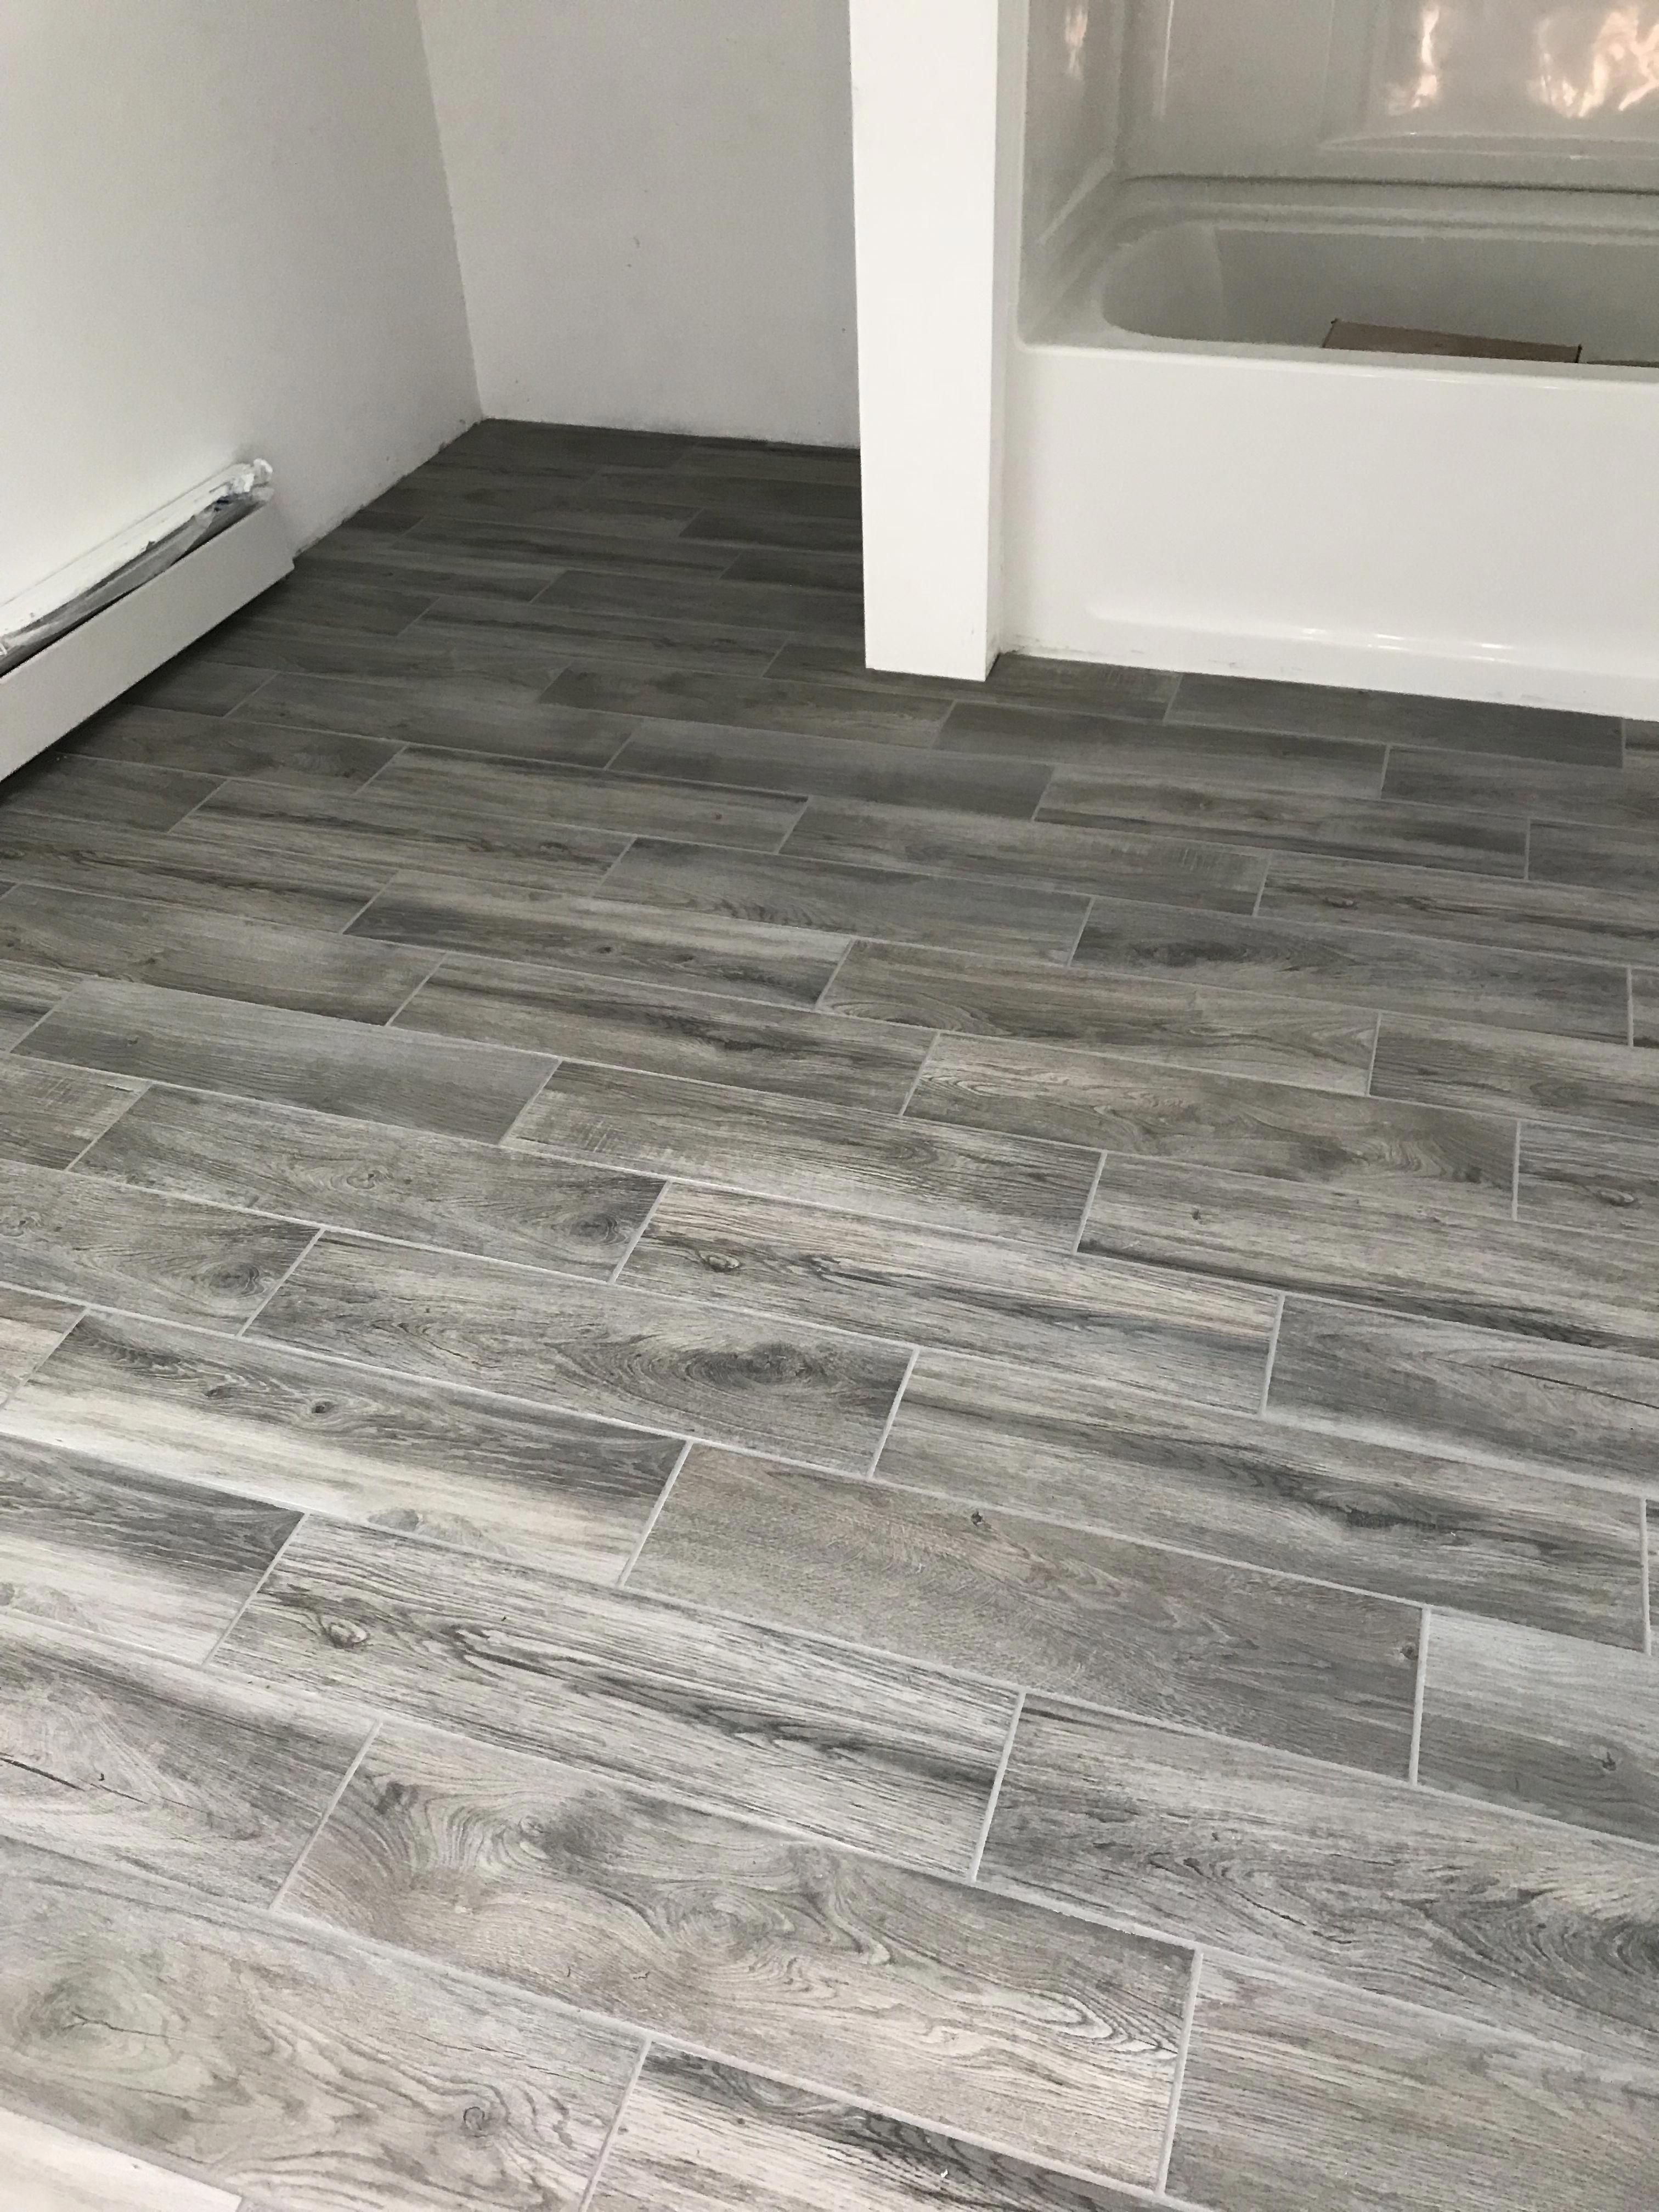 Lifeproof Shadow Wood 6 In X 24 In Porcelain Floor And Wall Tile 14 55 Sq Ft Case Lp33624hd1pr Ceramic Wood Tile Floor Tile Floor Living Room Grey Wood Tile